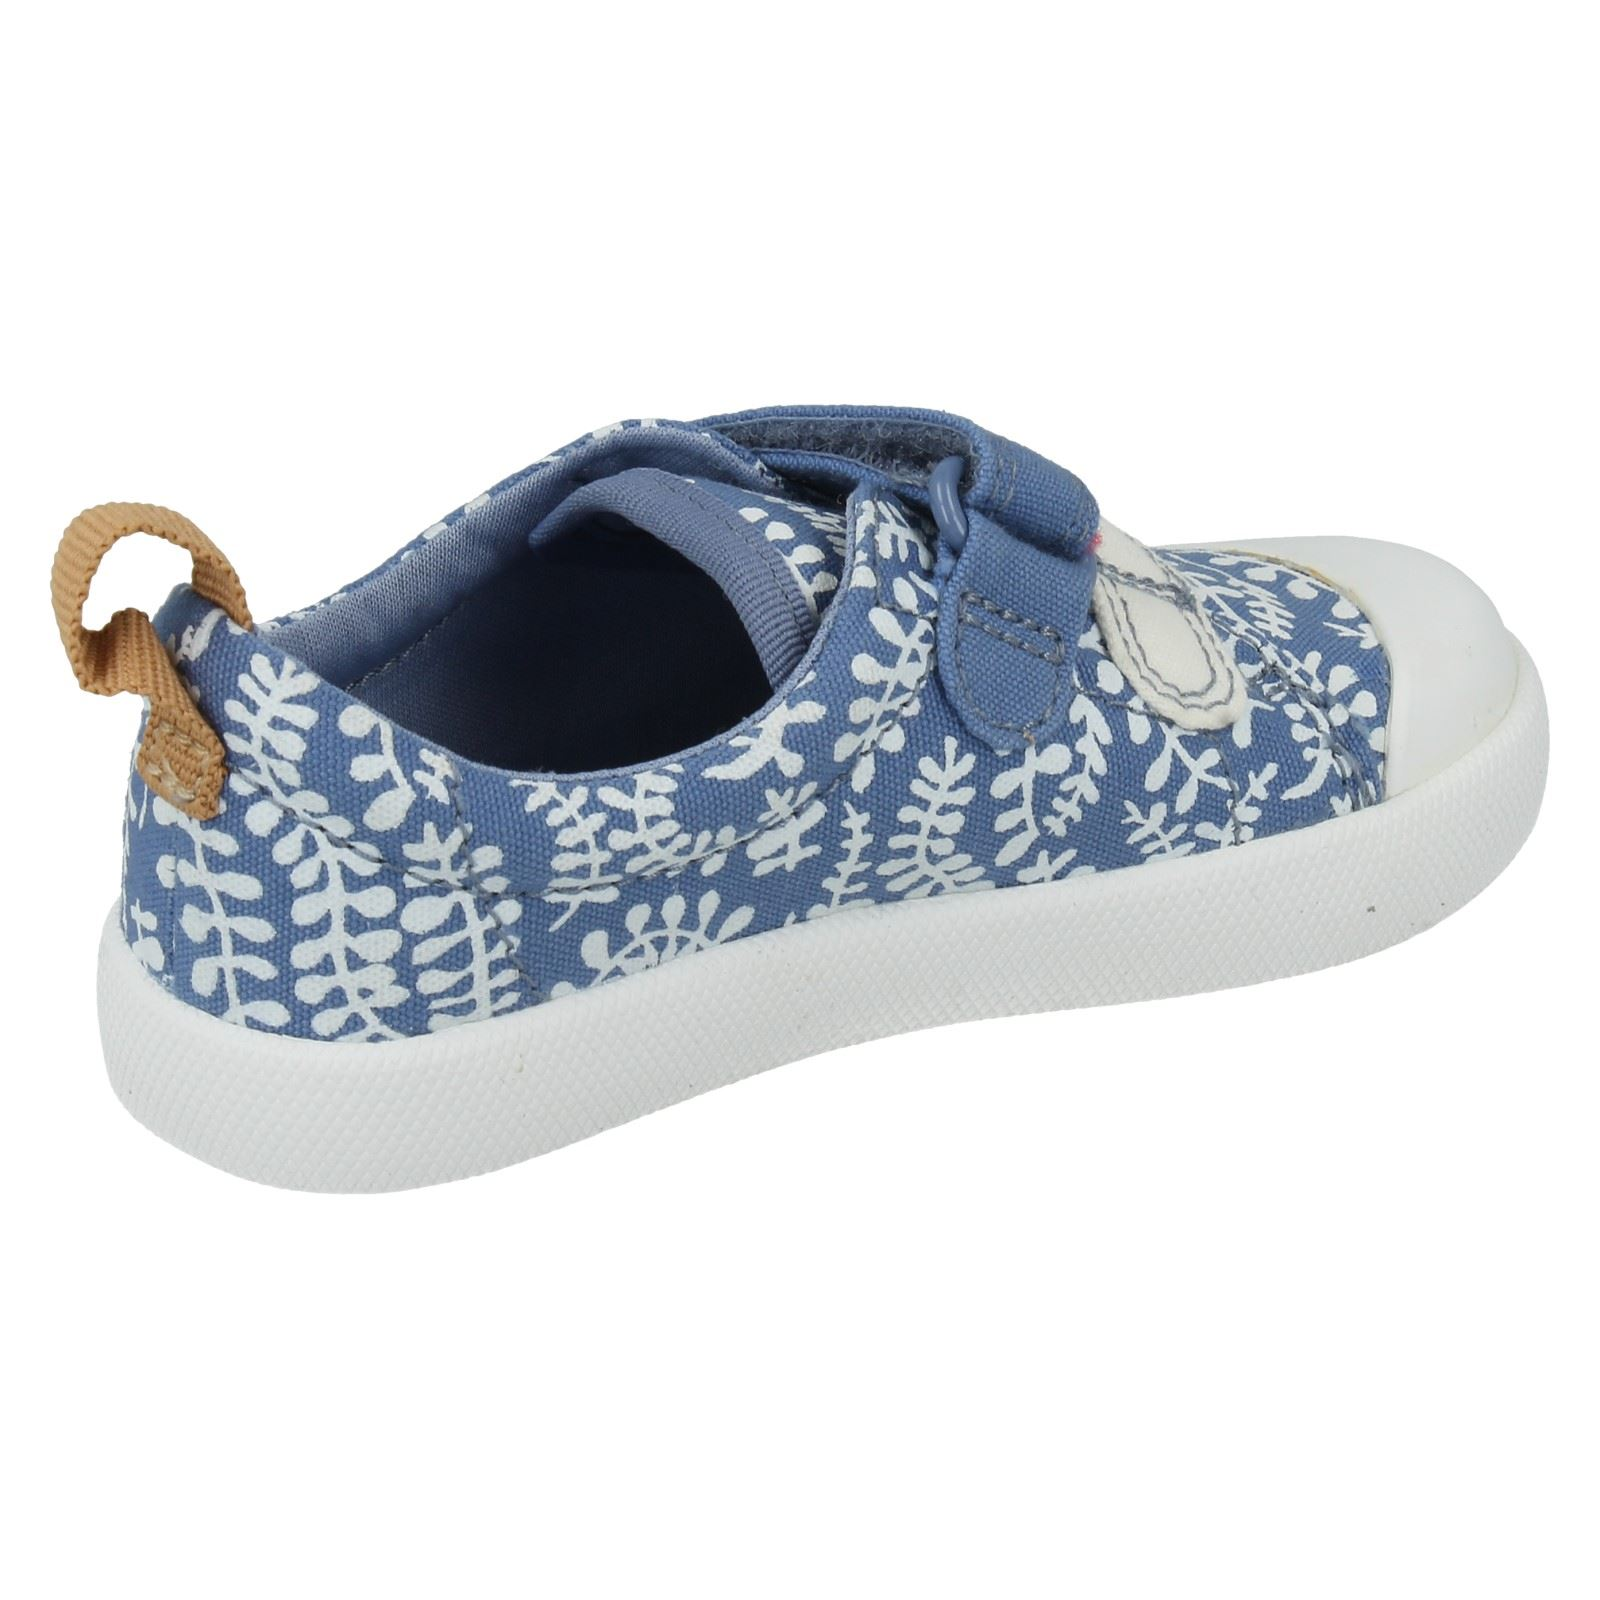 clarks doodles shoes style halcy hati ebay